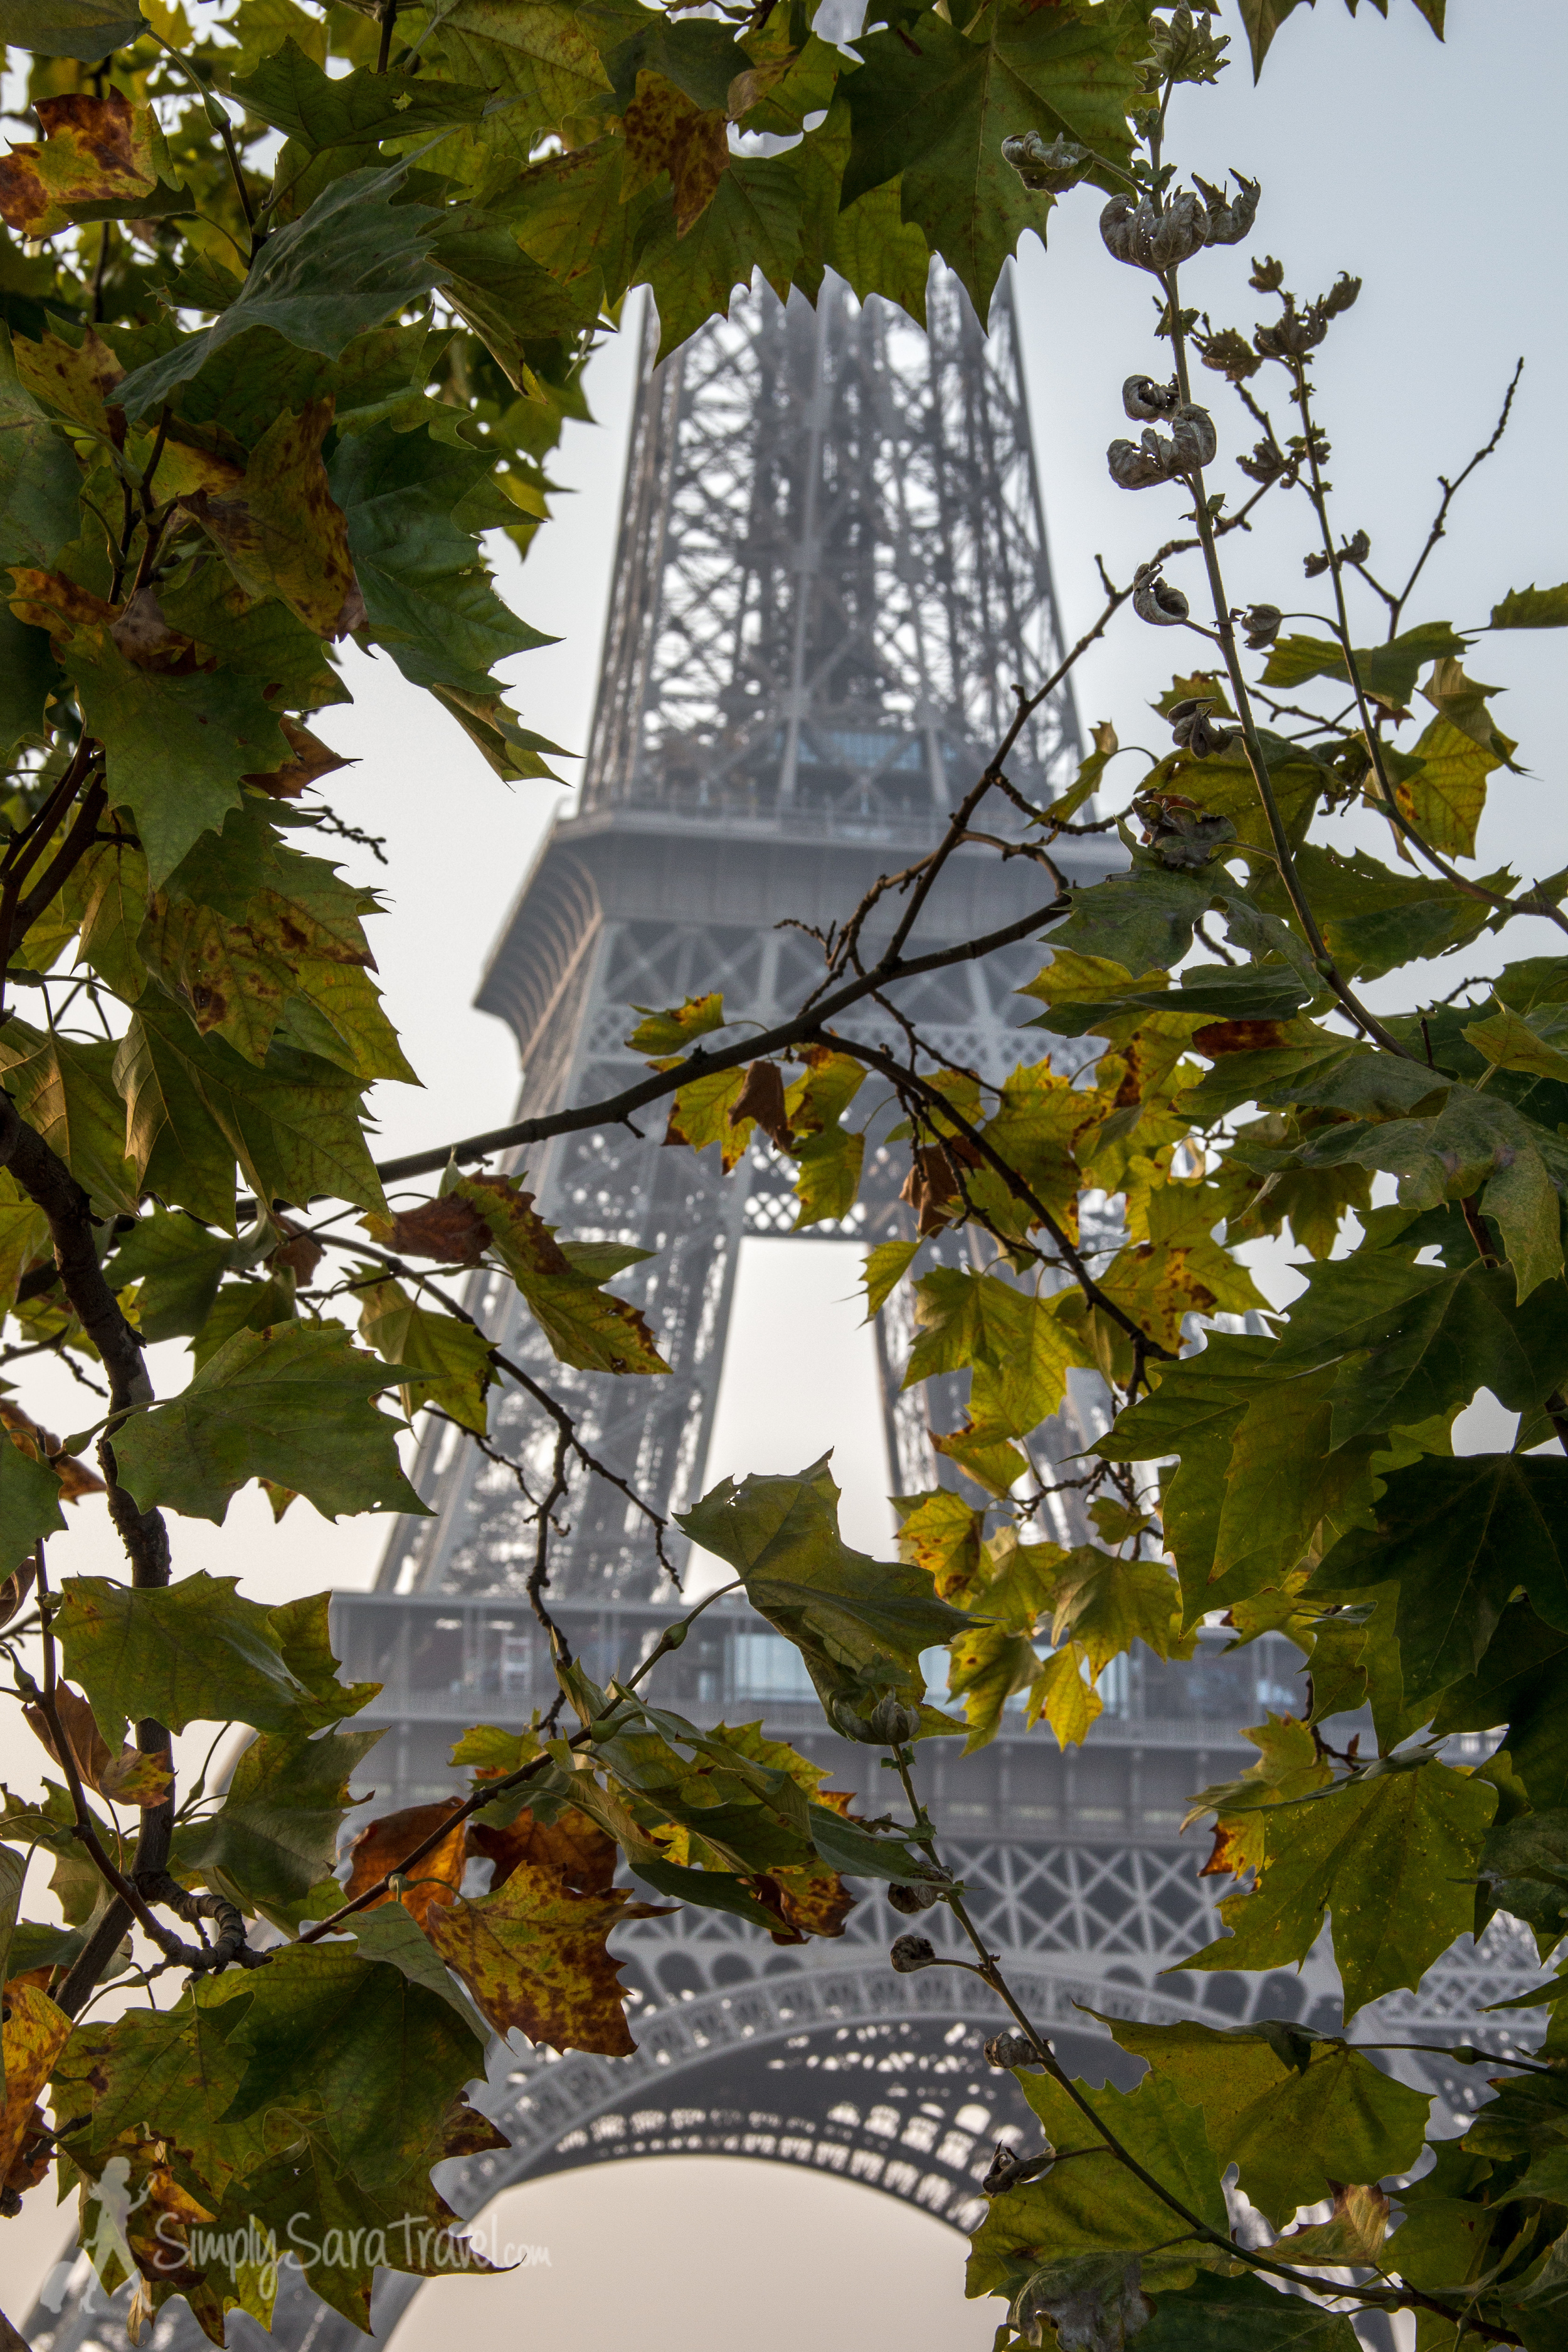 Eiffel Tower with leaves in front of it, Paris, France